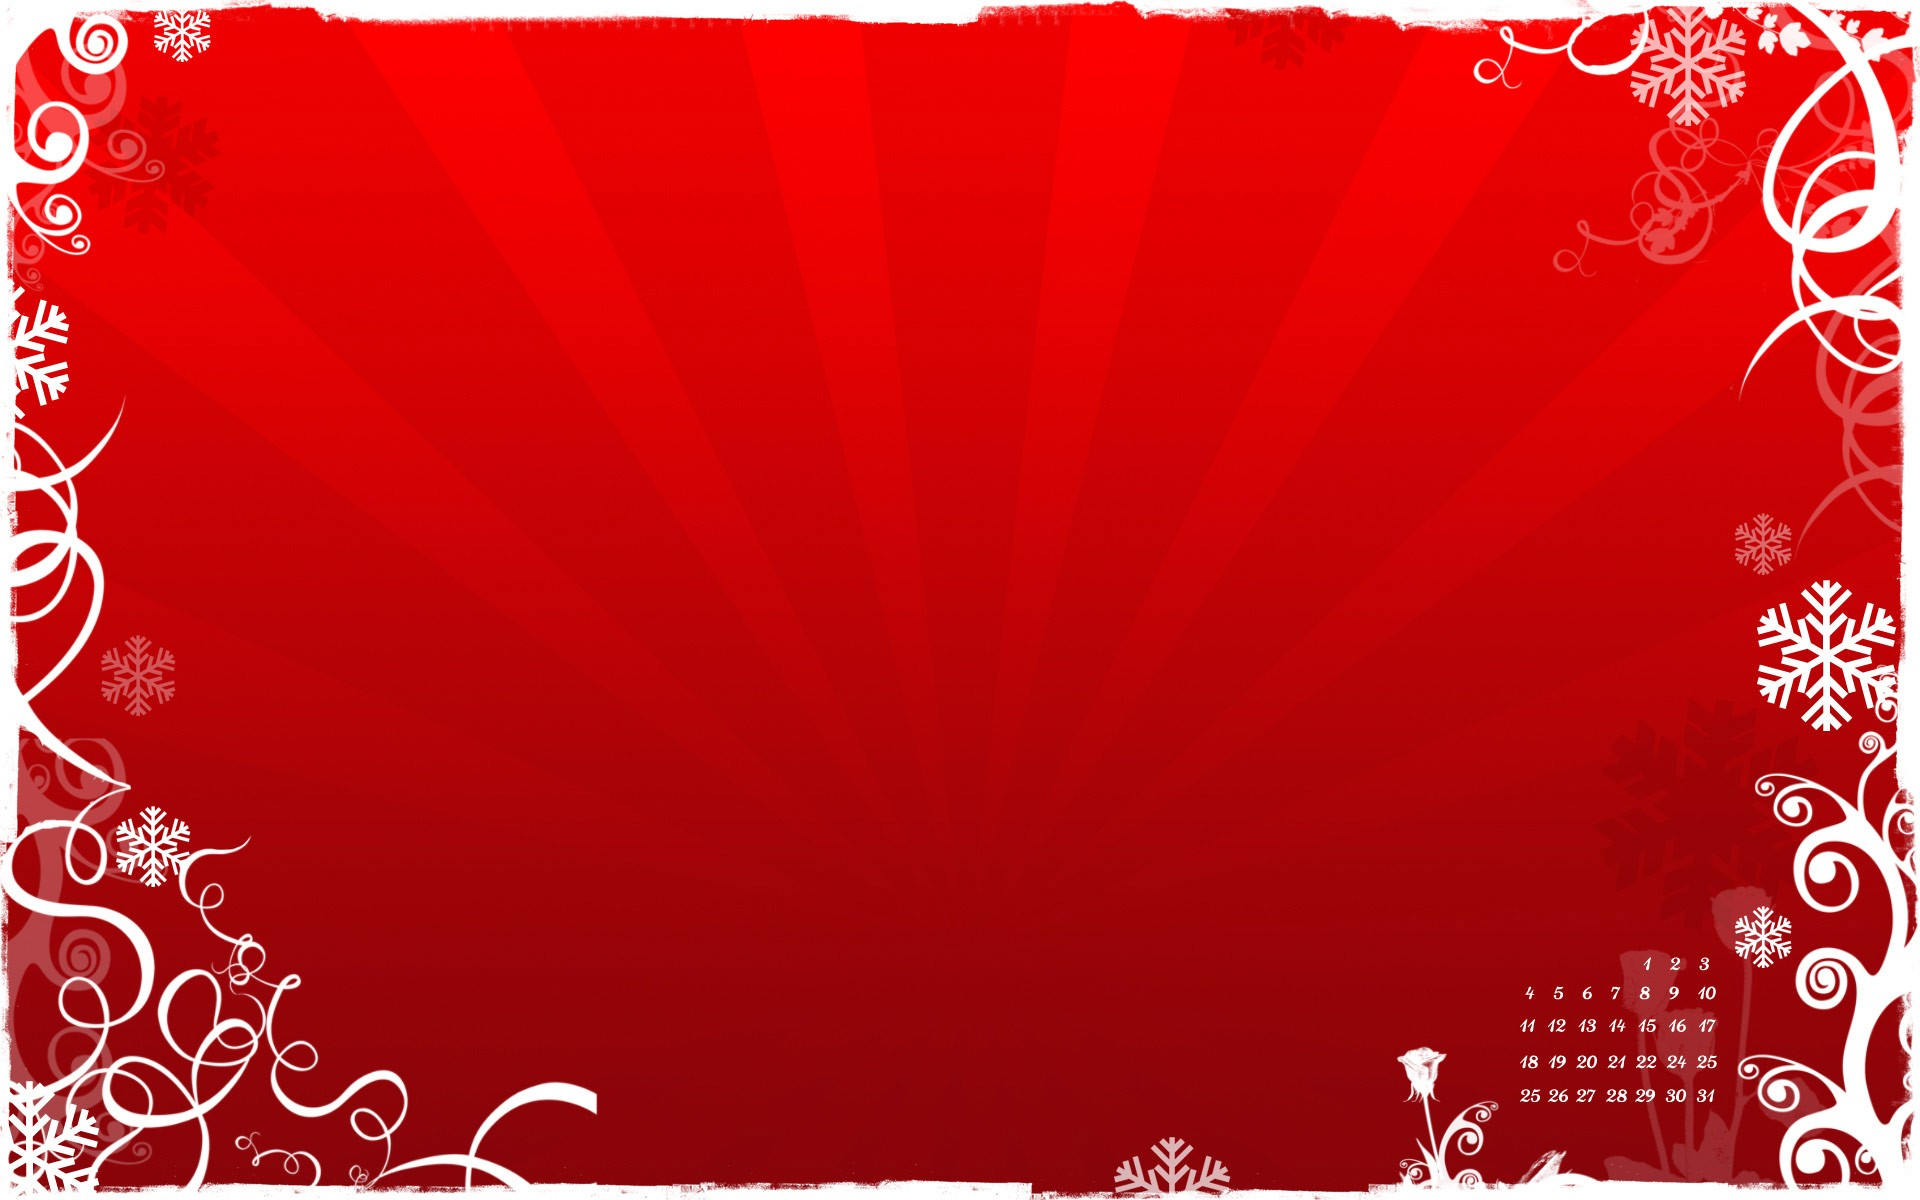 background red download free stunning wallpapers for desktop and